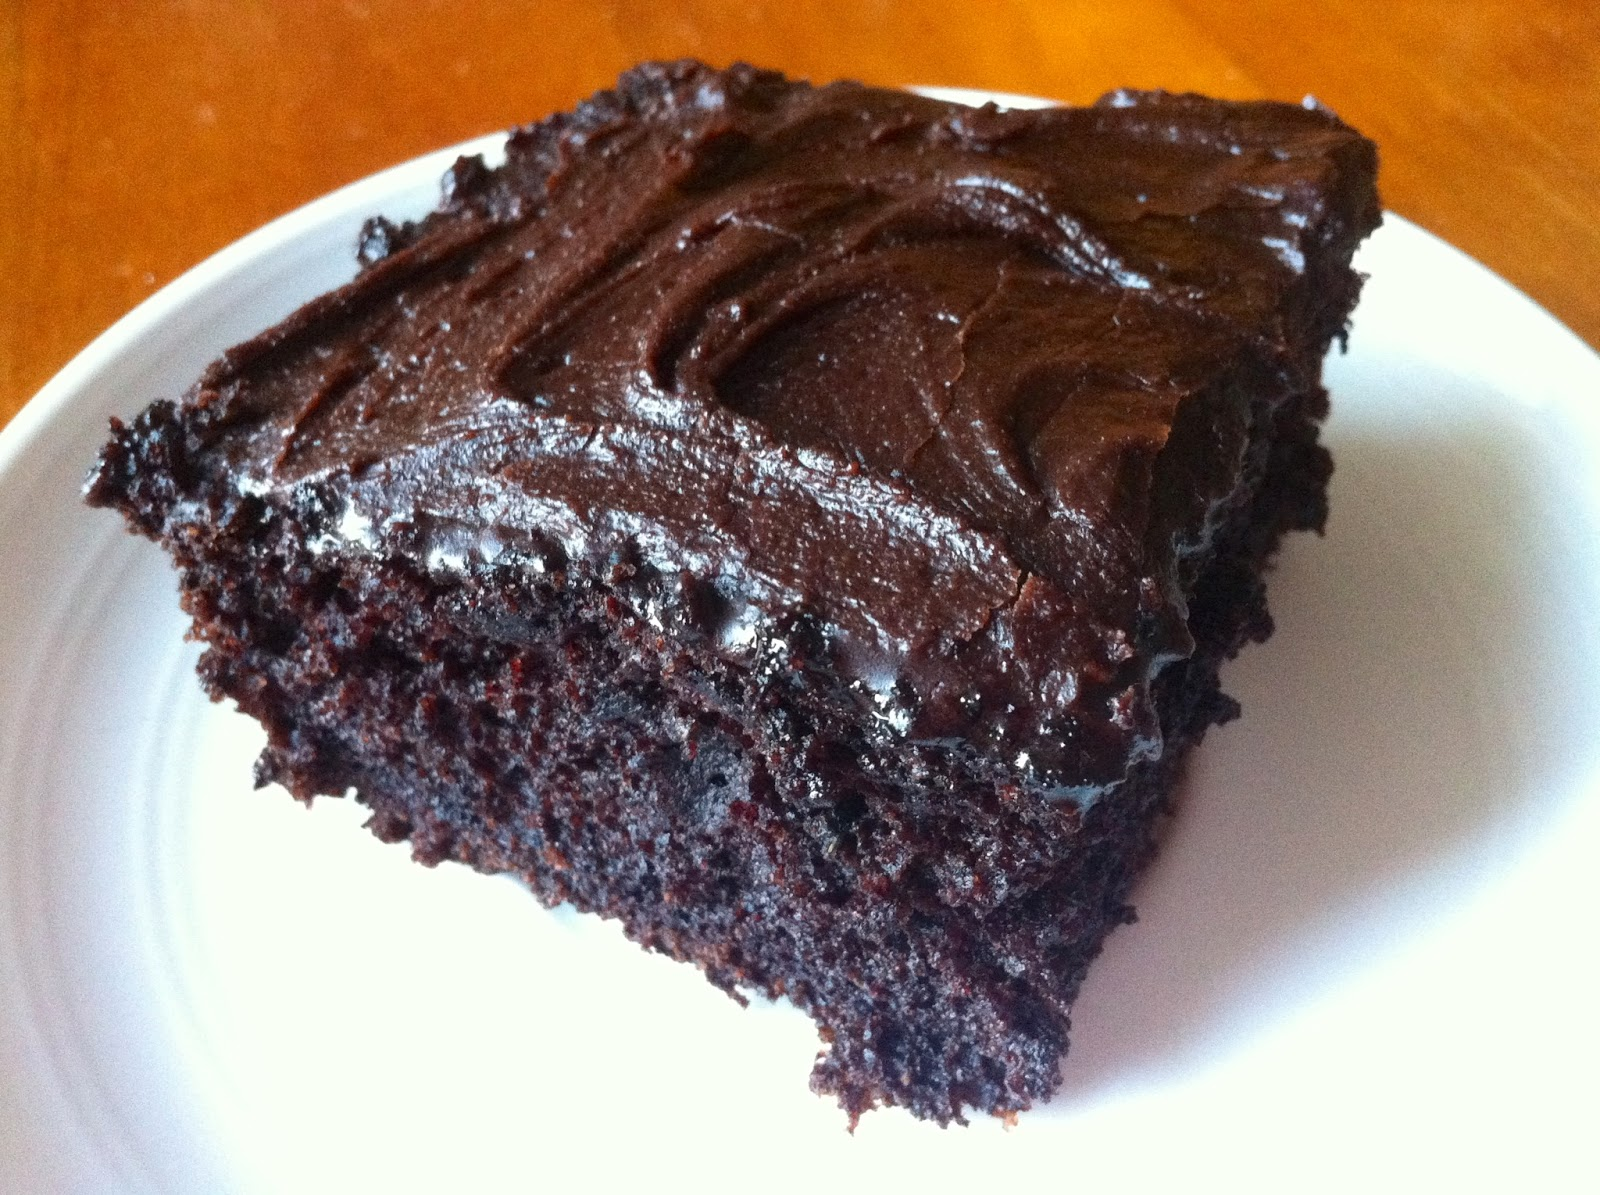 Sugarless Life: Chocolate Zucchini Cake and Happy Conversations